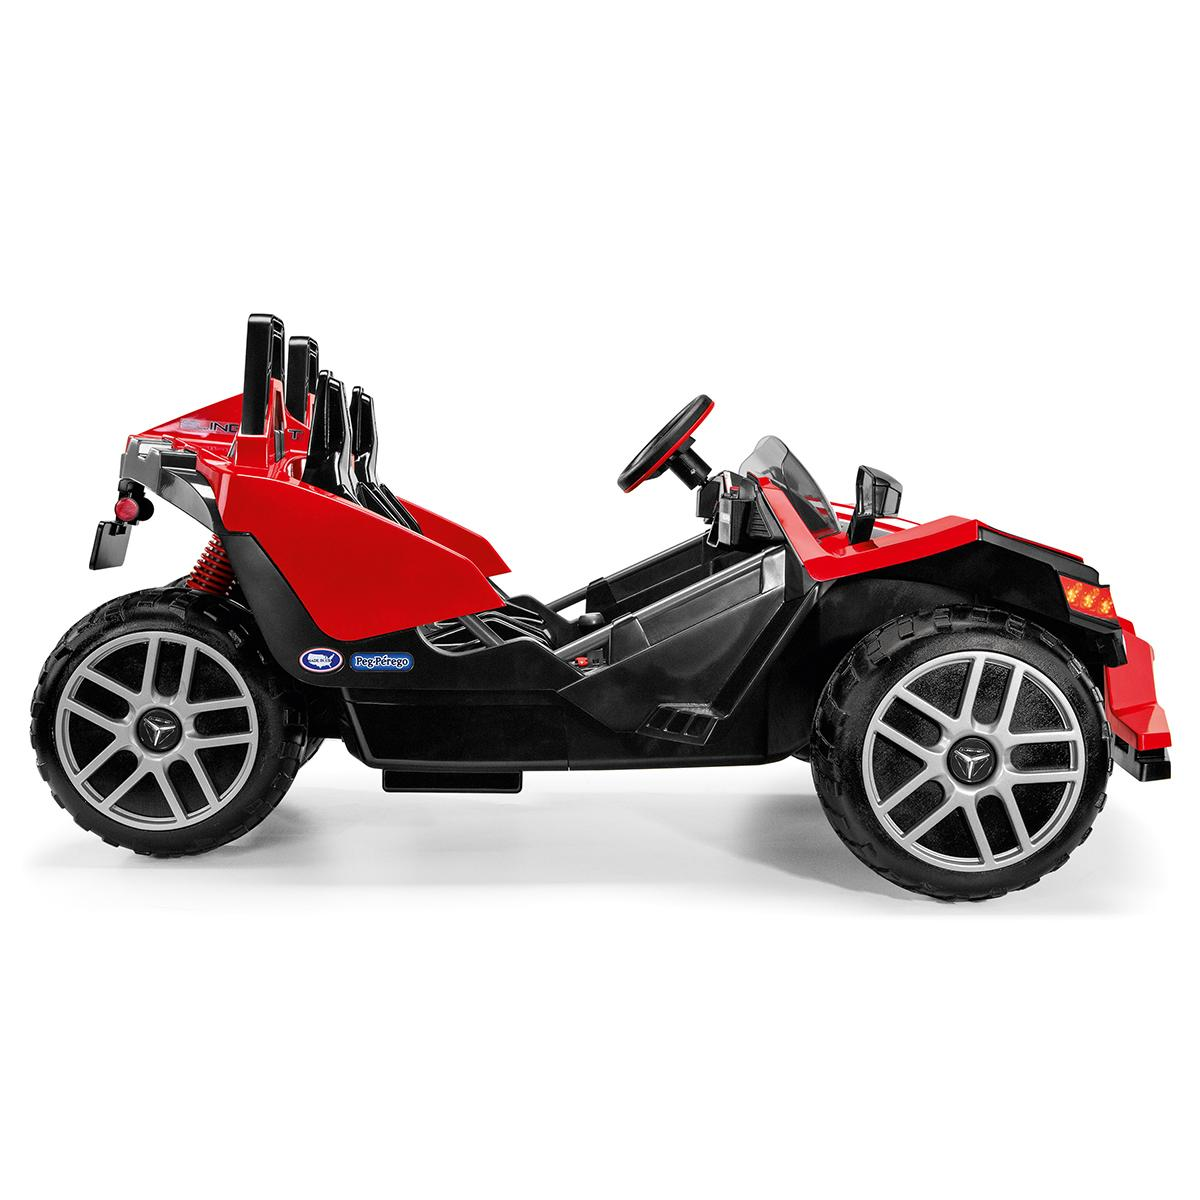 Amazon.com: Peg Perego Polaris Slingshot Ride On: Toys & Games